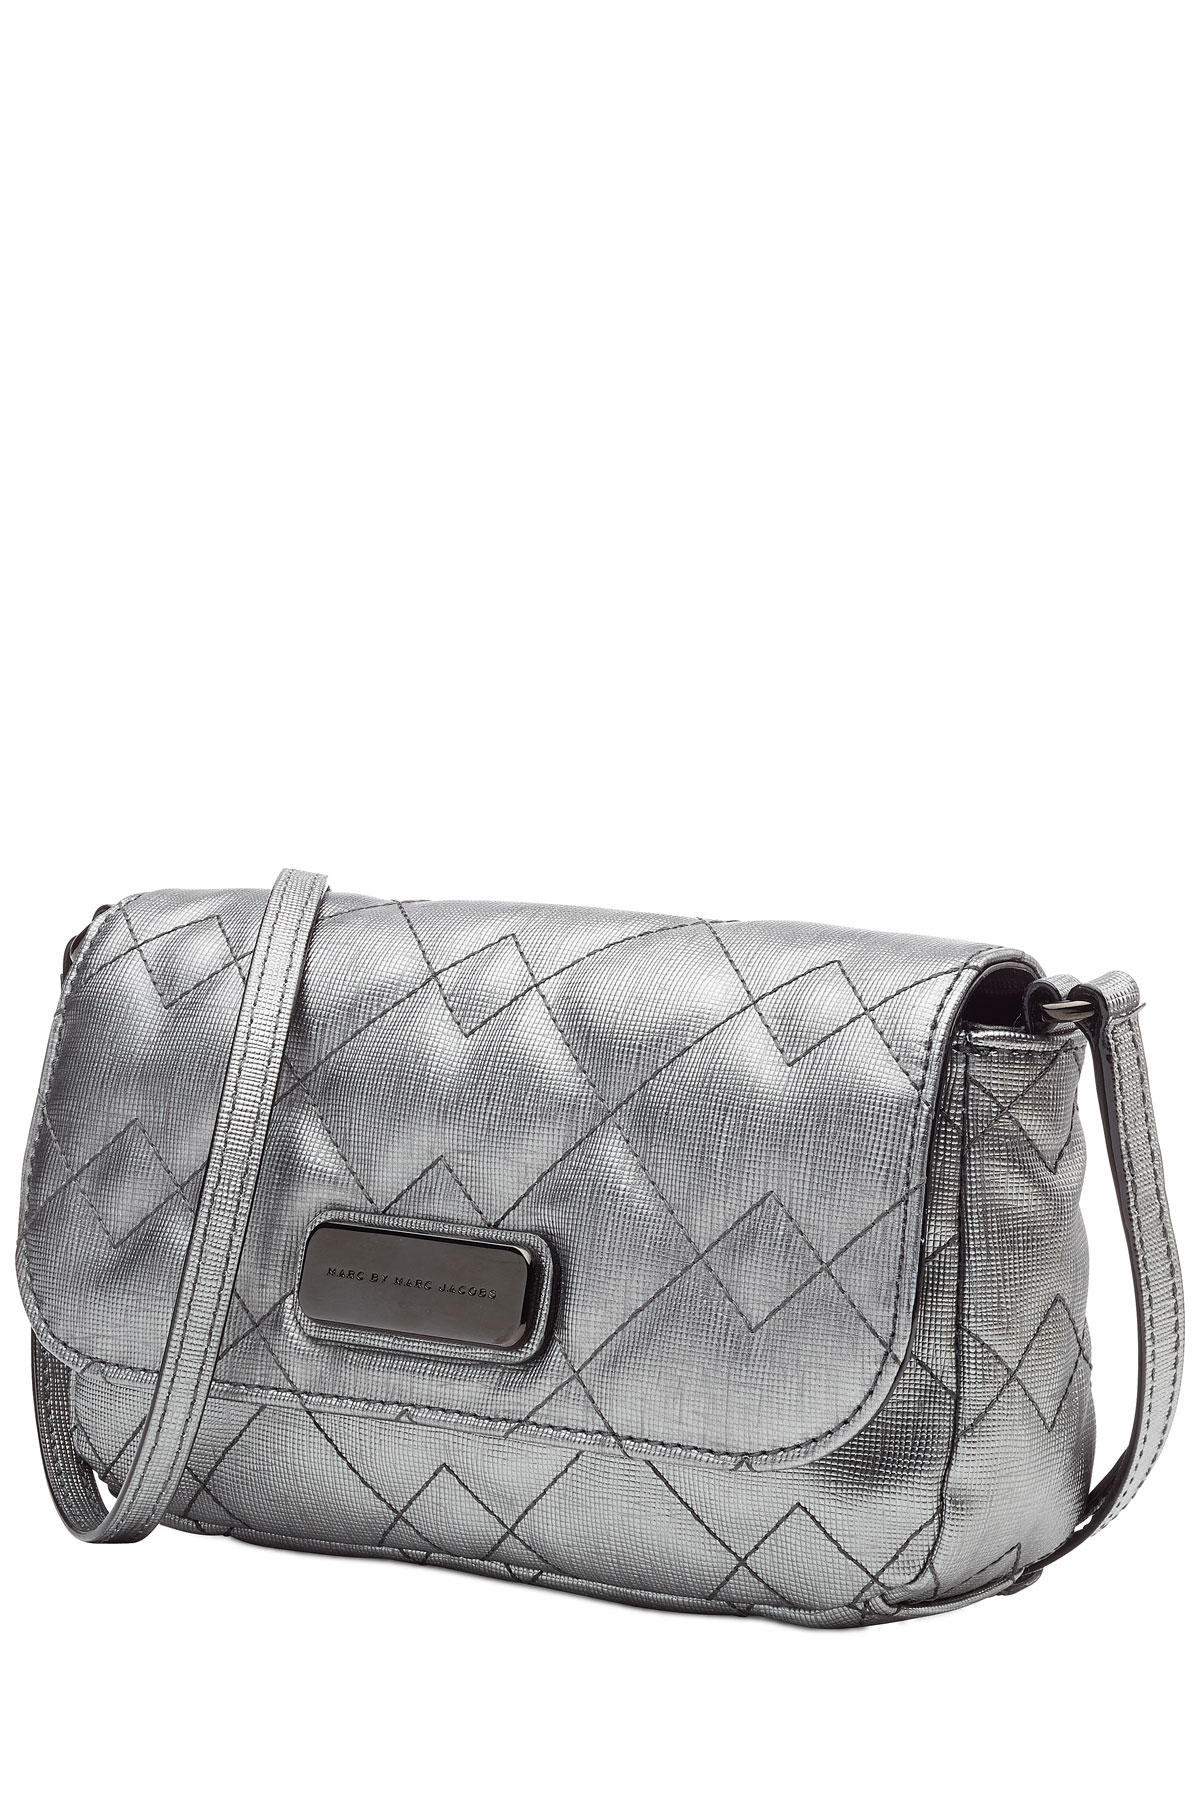 Silver shoulder bag Marc Jacobs TvCyC